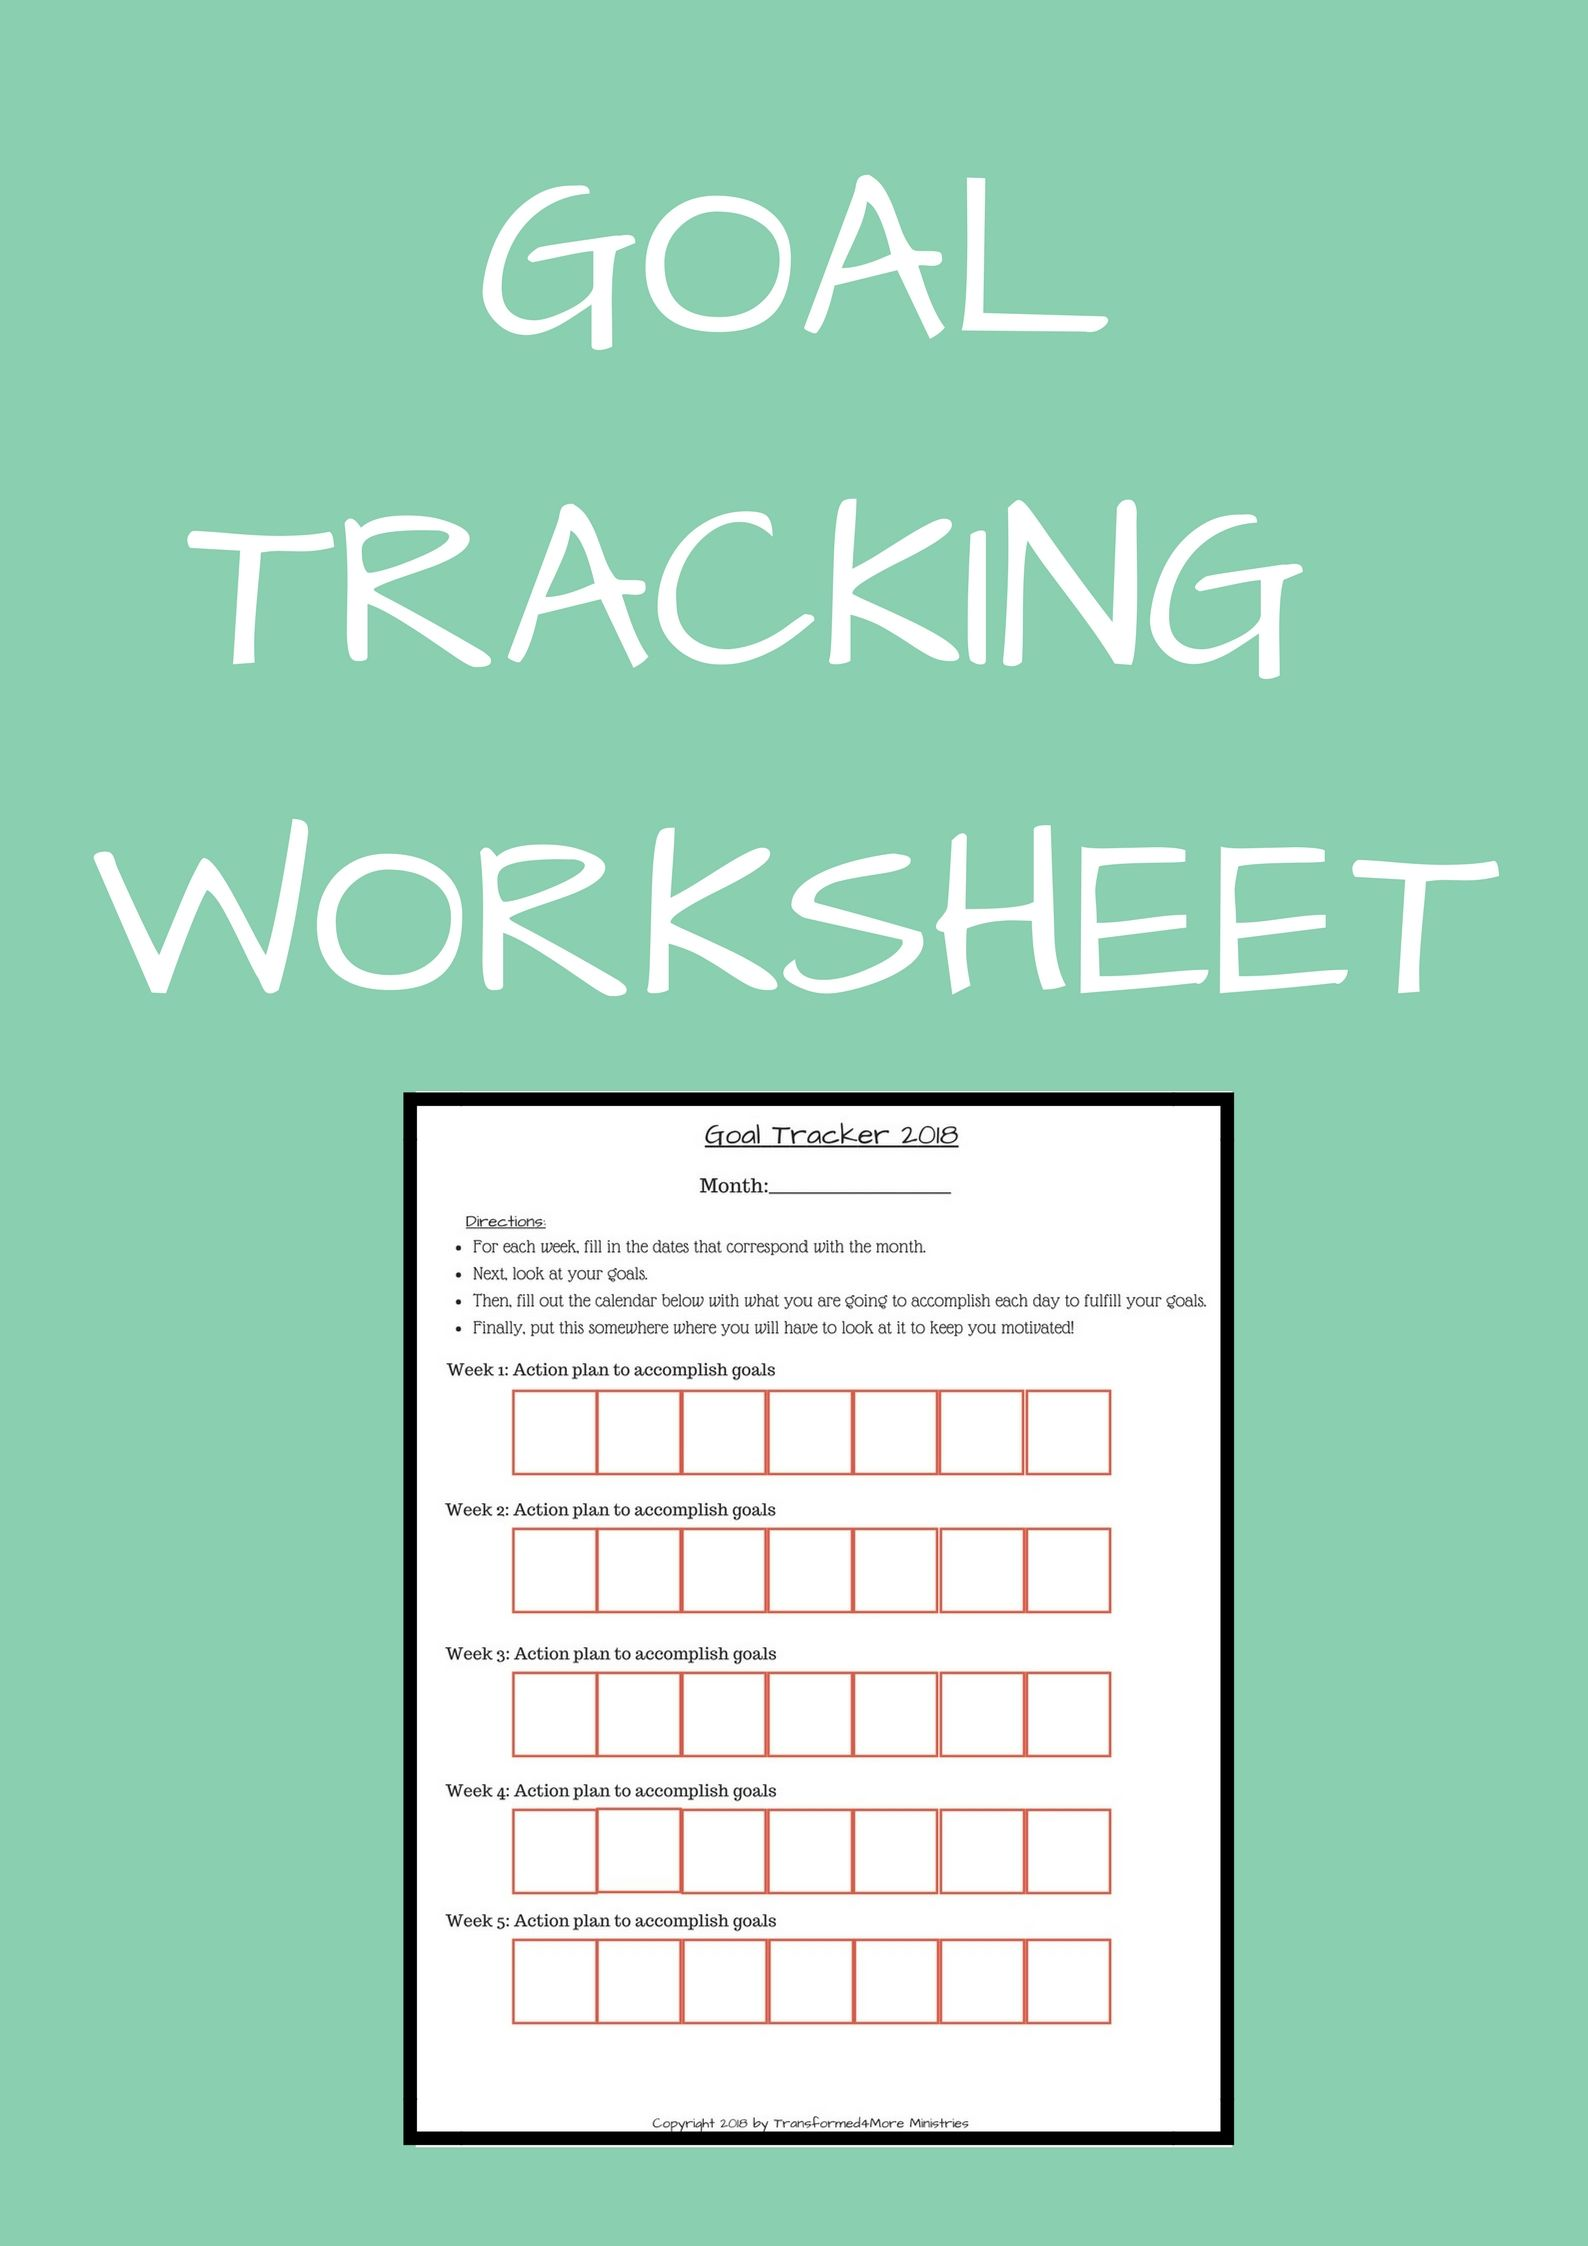 Goal Tracking Worksheet Transformed4more Free